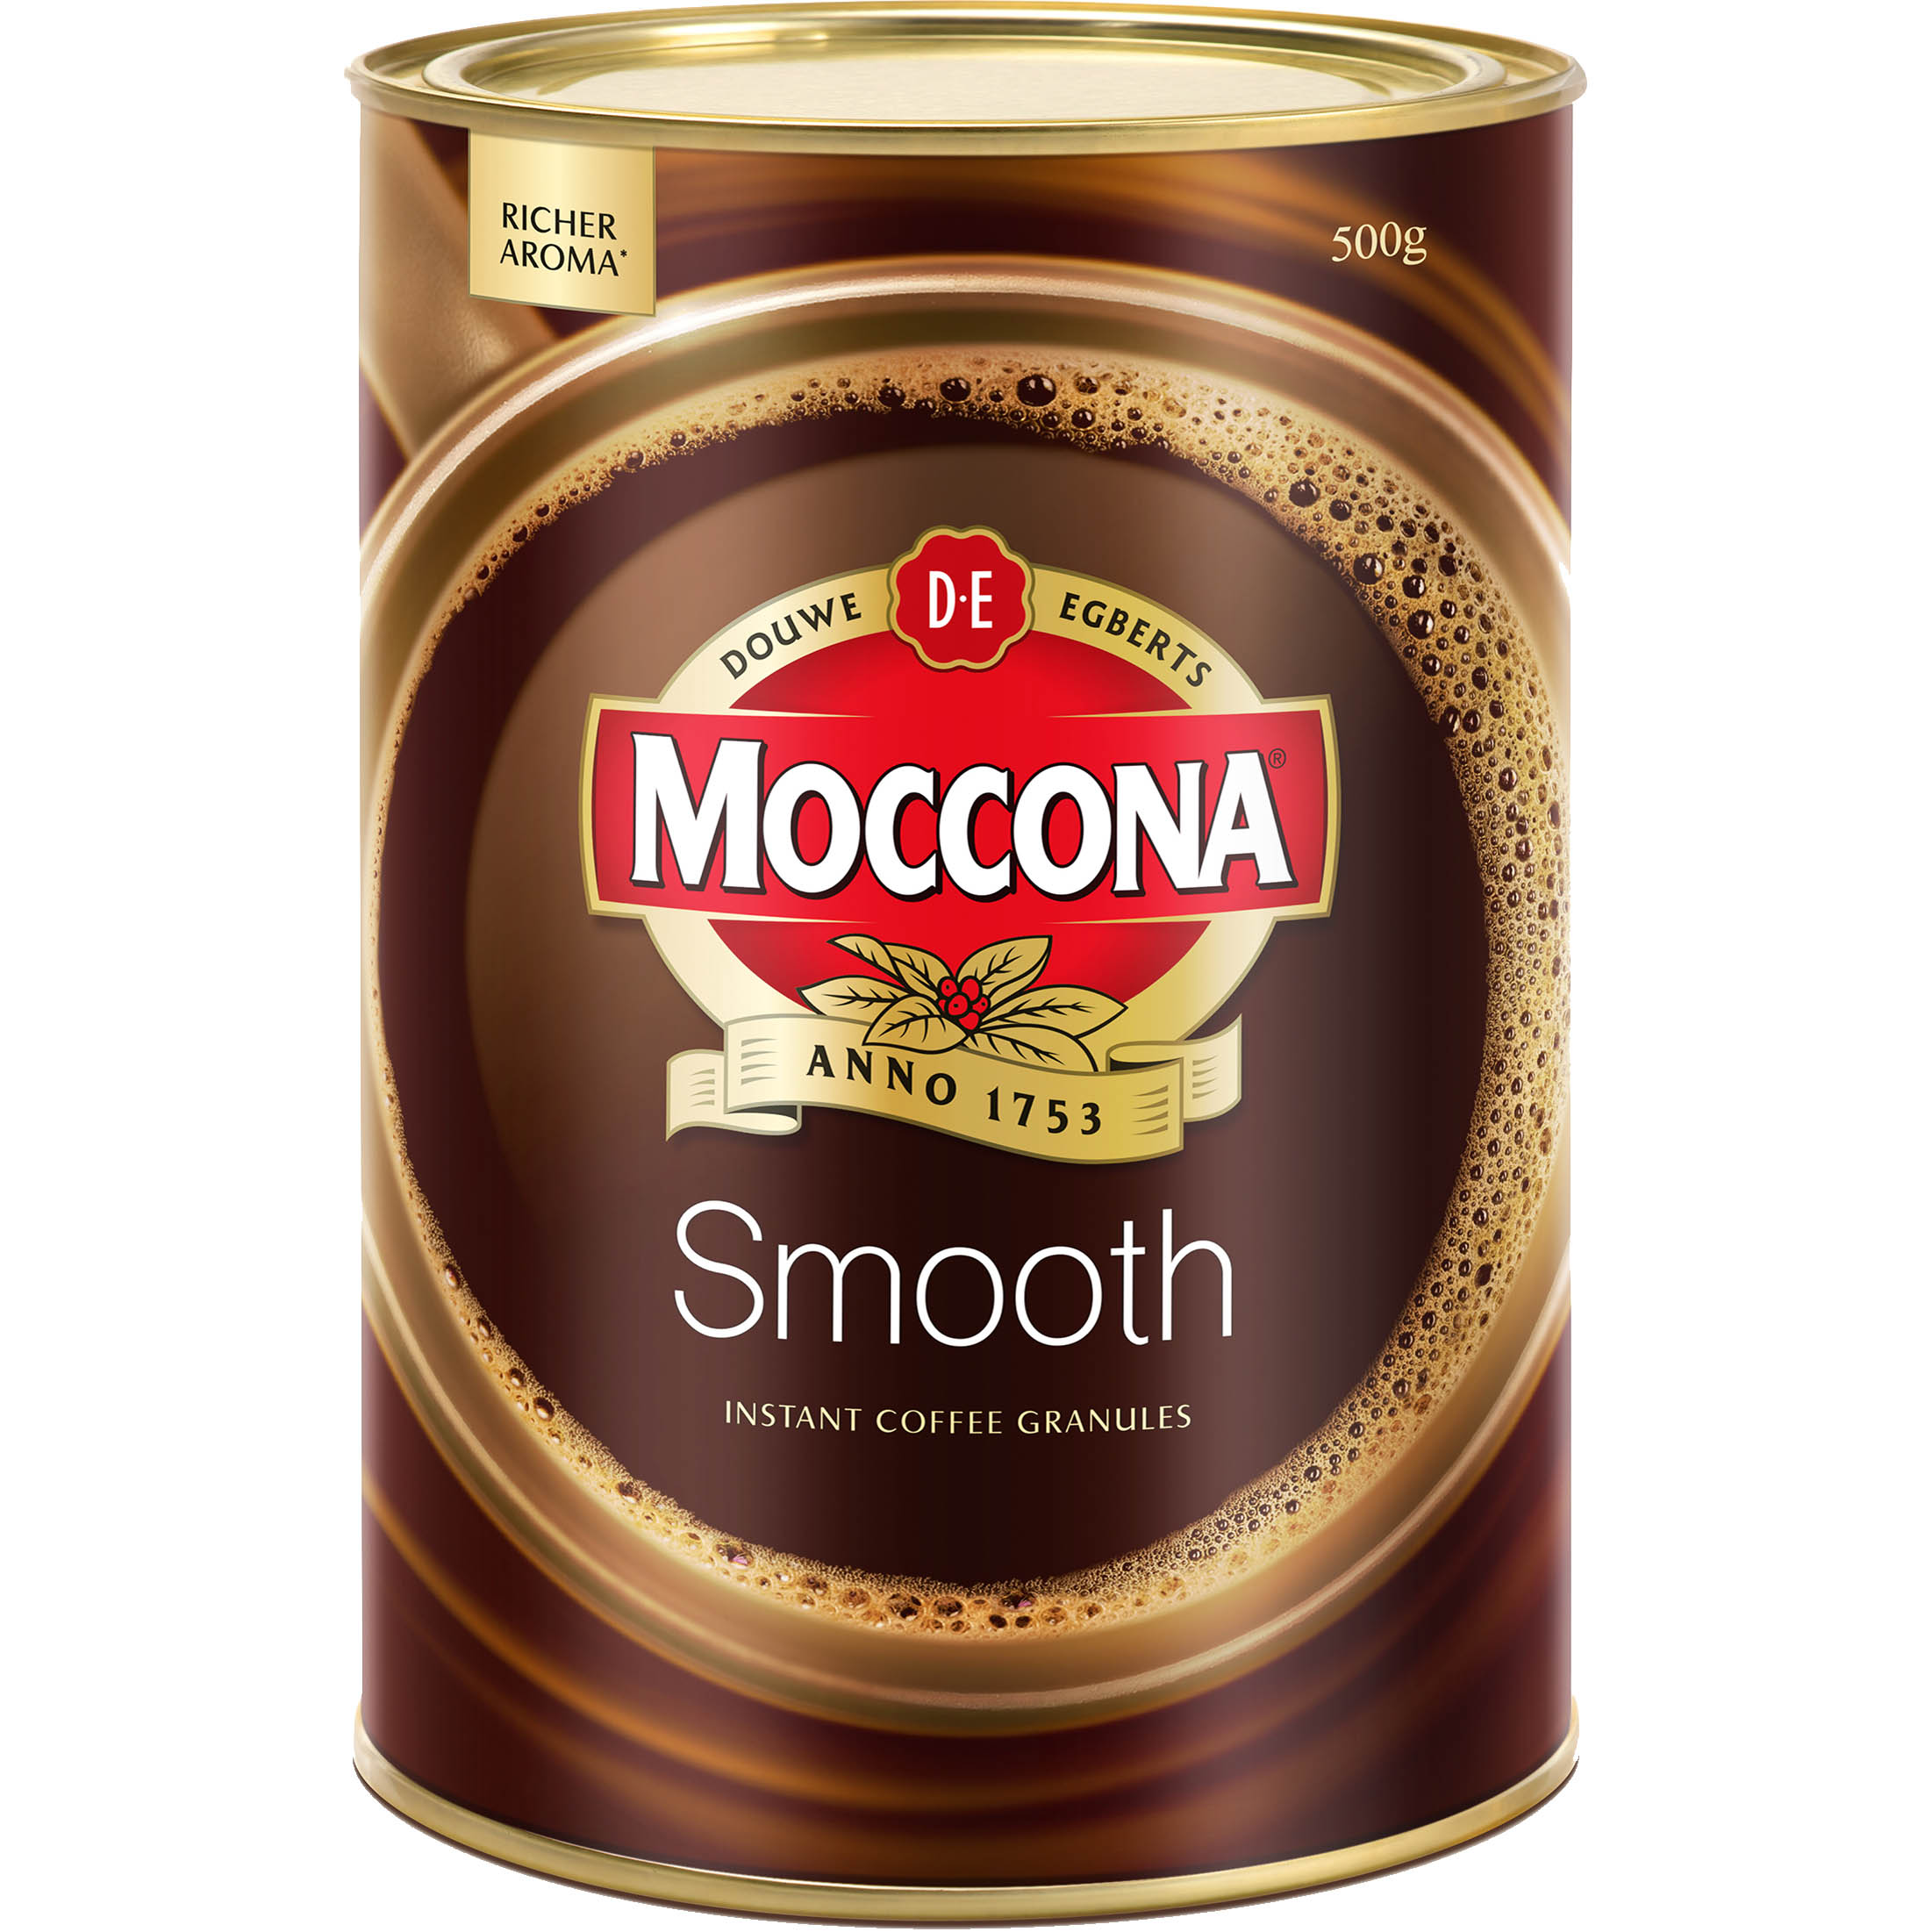 Image for MOCCONA SMOOTH INSTANT COFFEE 500G CAN from The Paper Bahn Office National